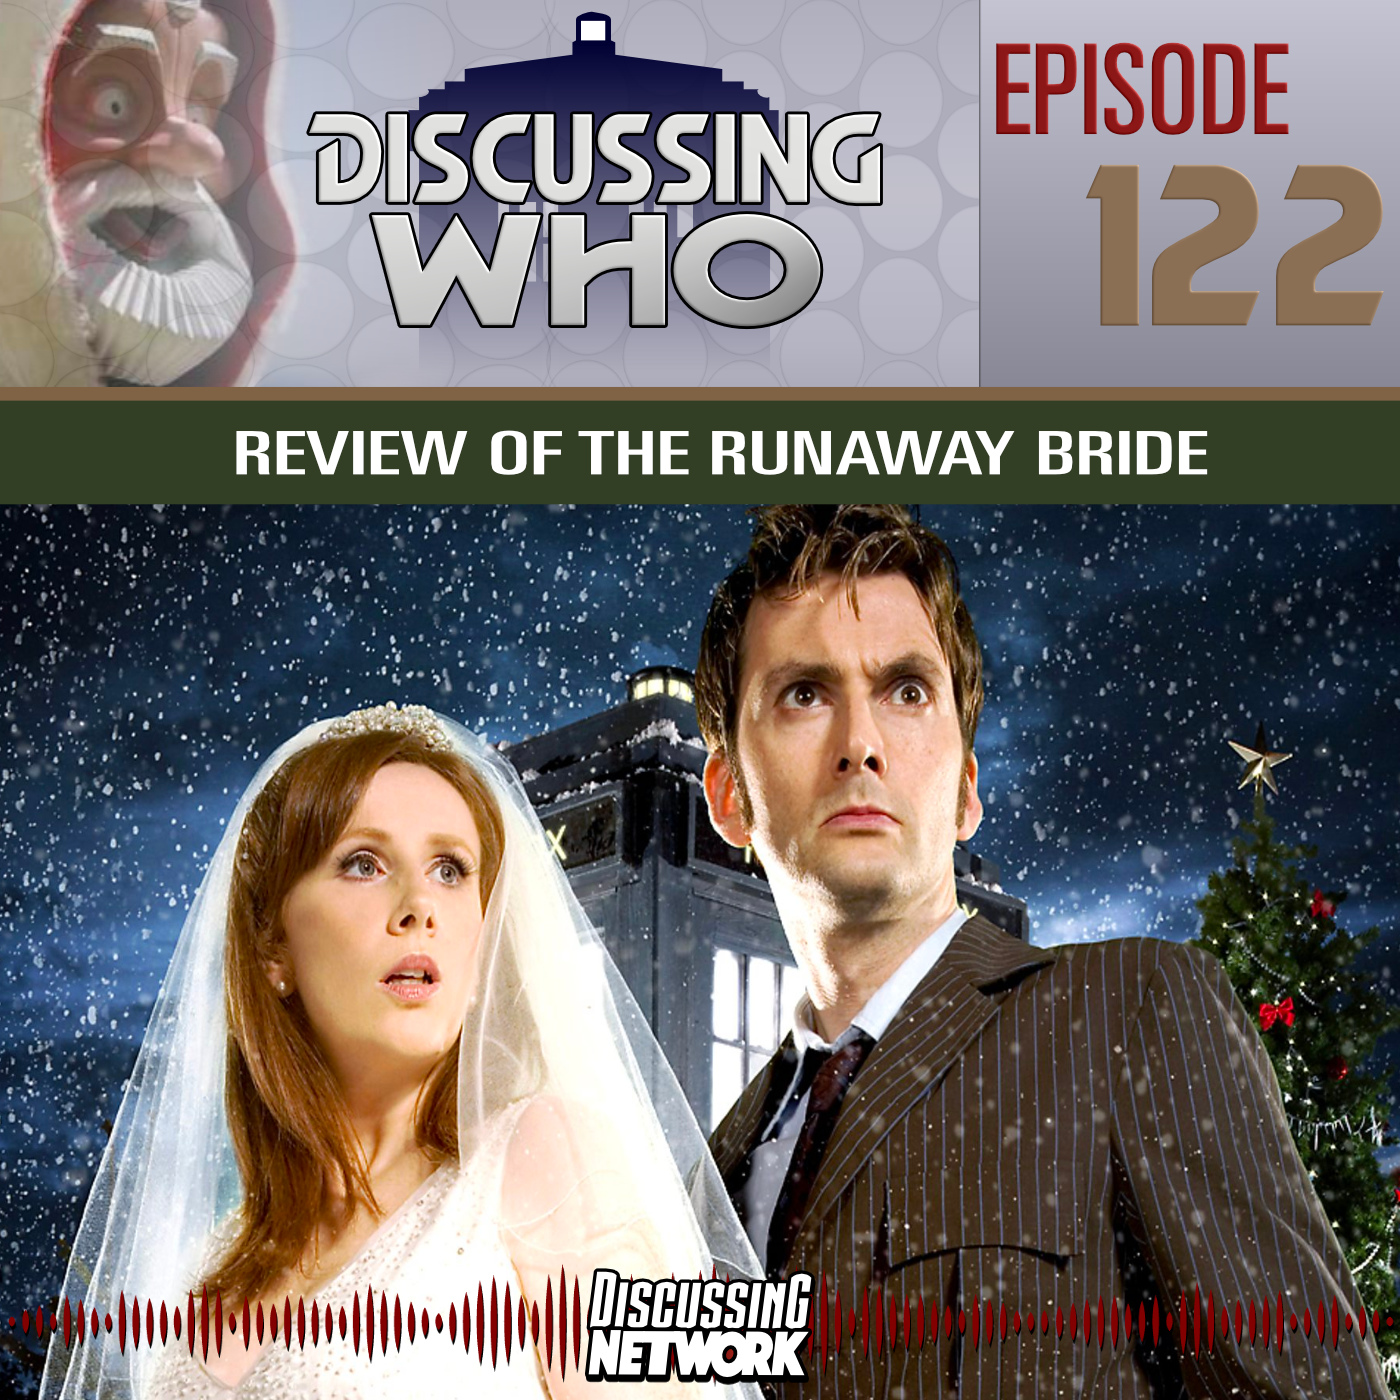 Review of the Runaway Bride, Discussing Who Episode 122